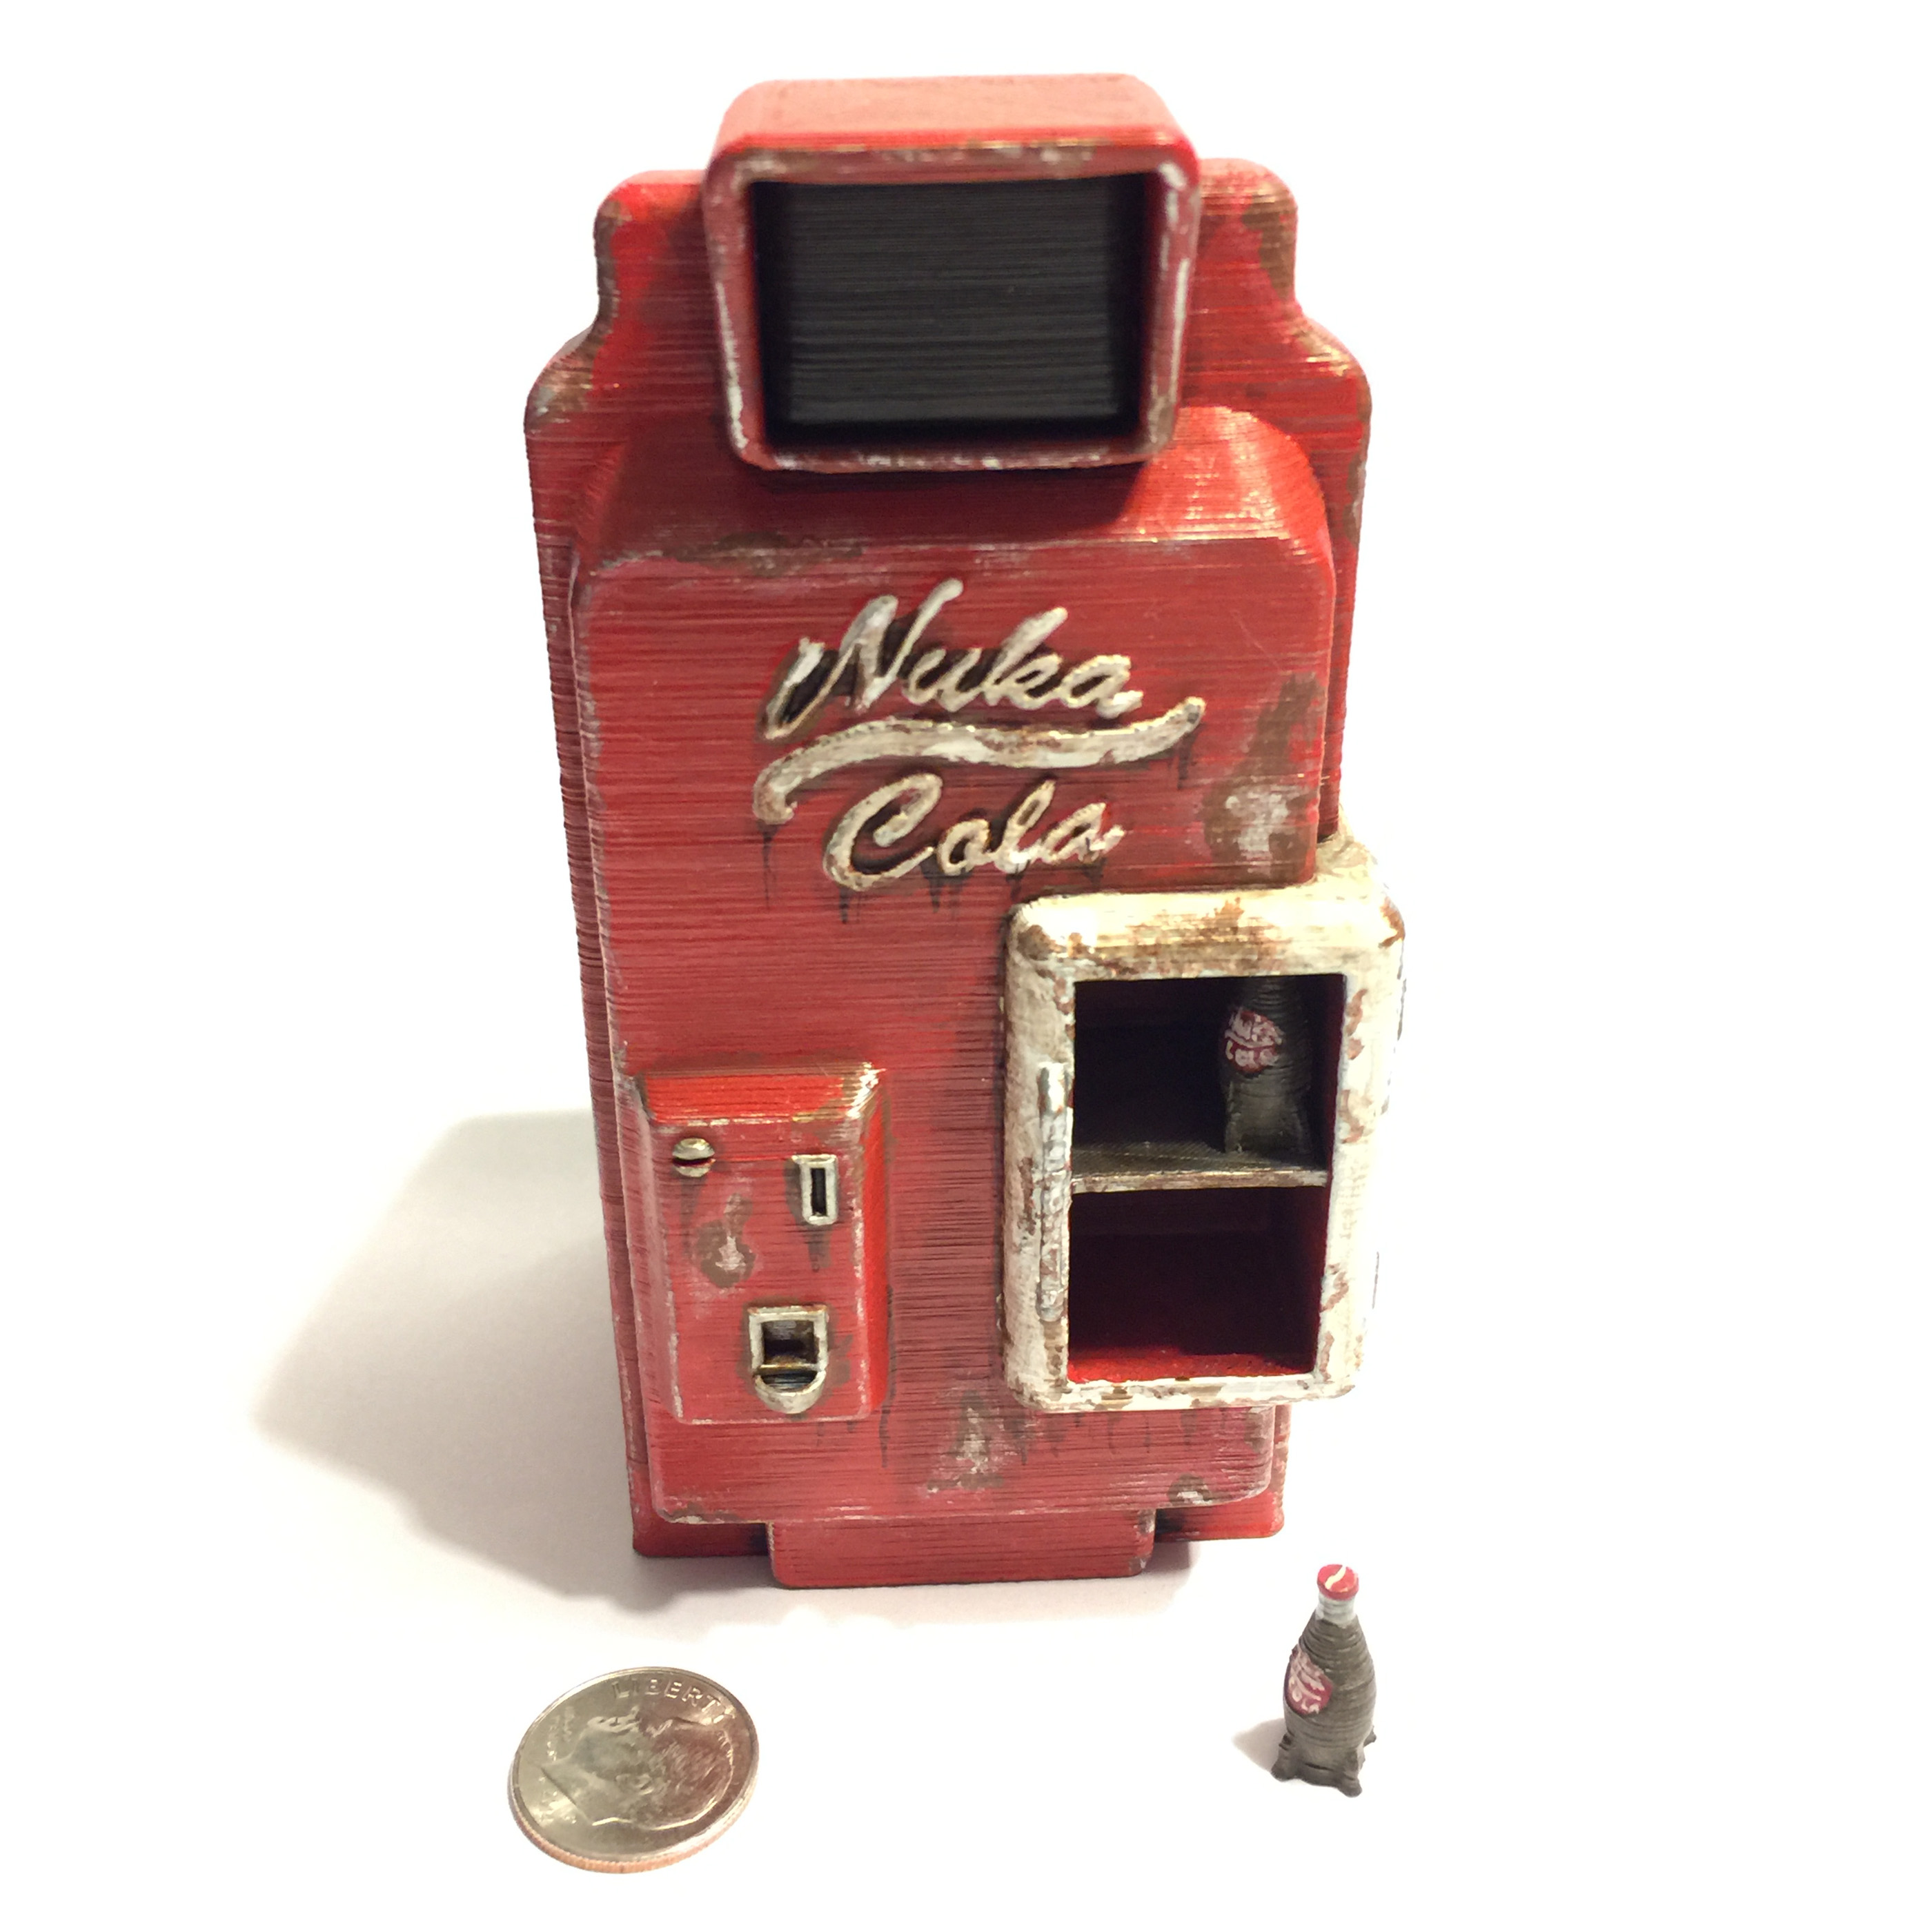 3d Printed Fallout 4 Nuka Cola Vending Machine Pic 4 Make Your Own Beautiful  HD Wallpapers, Images Over 1000+ [ralydesign.ml]